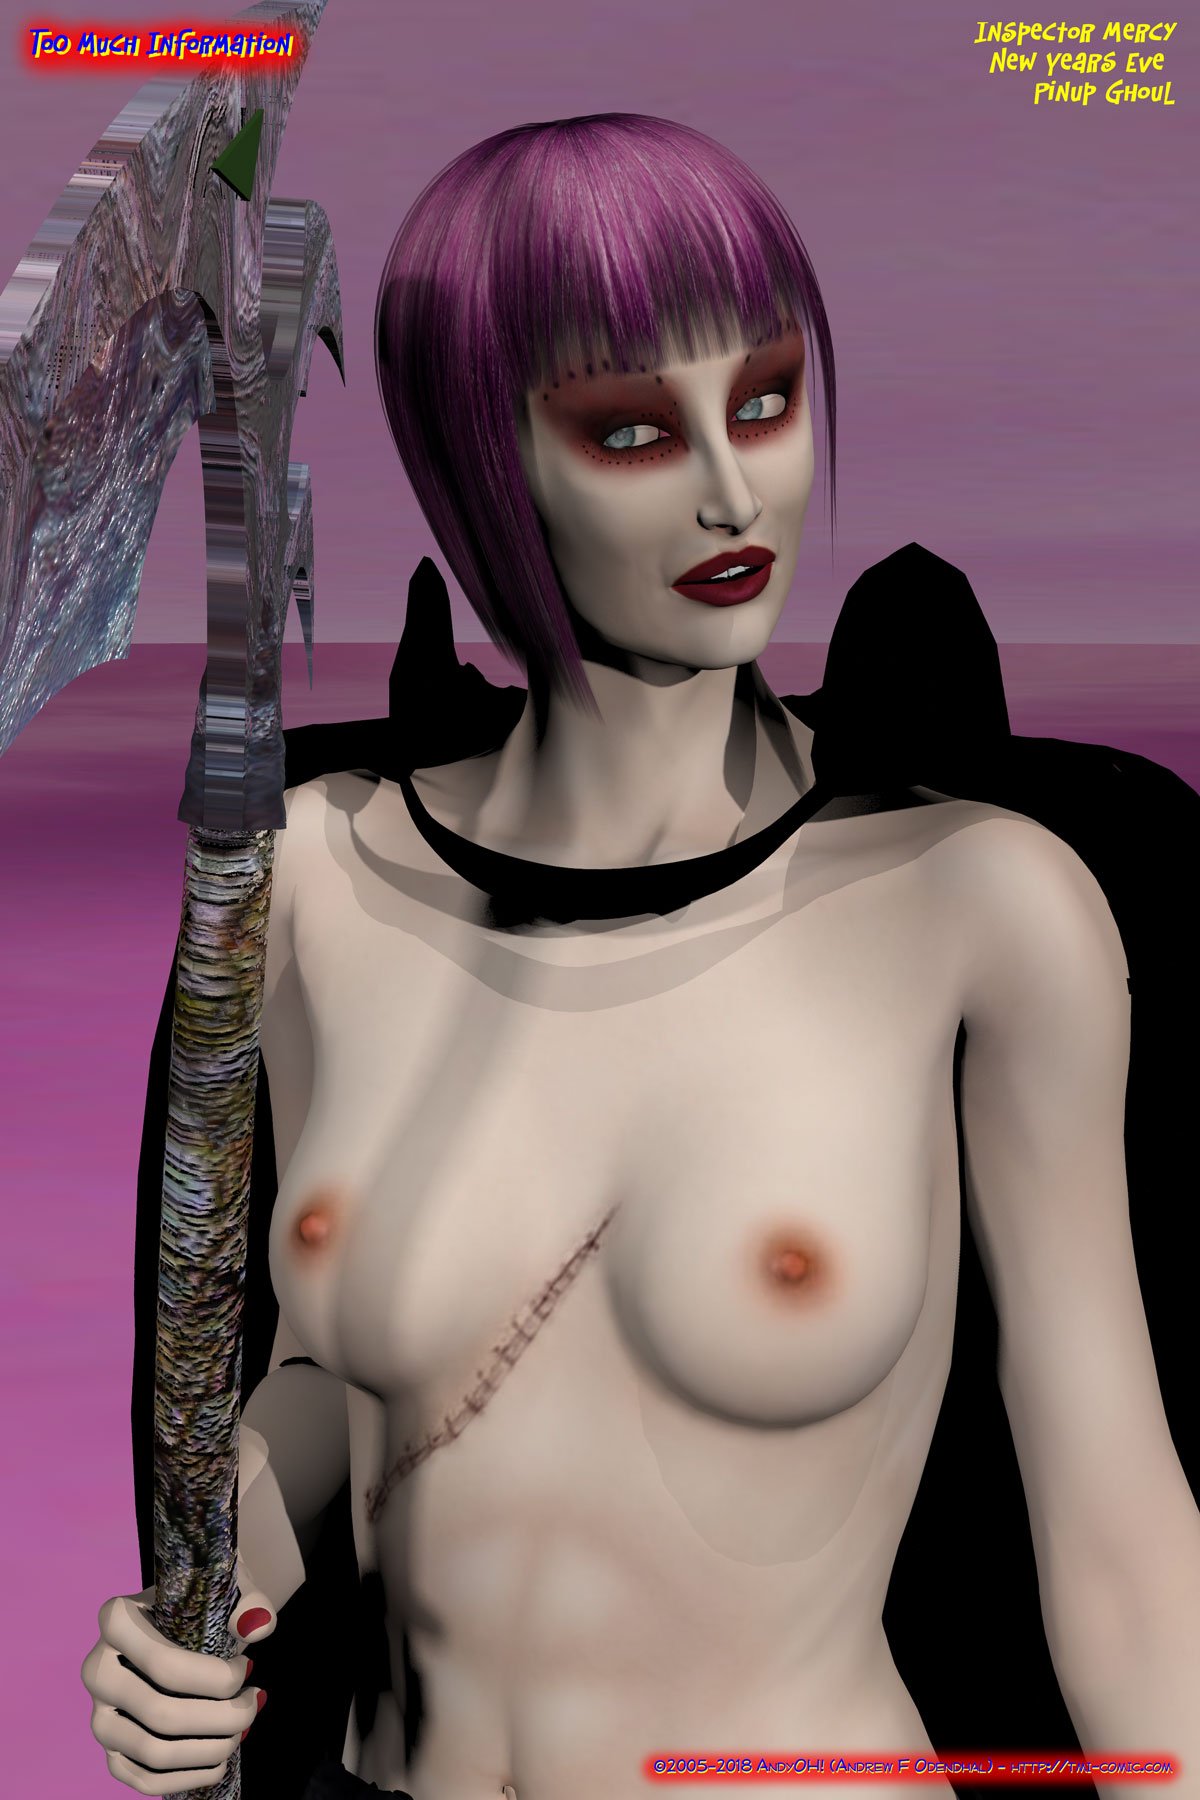 Inspector_Mercy-New_Years_Eve_Pinup_Ghoul-Topless-incentive